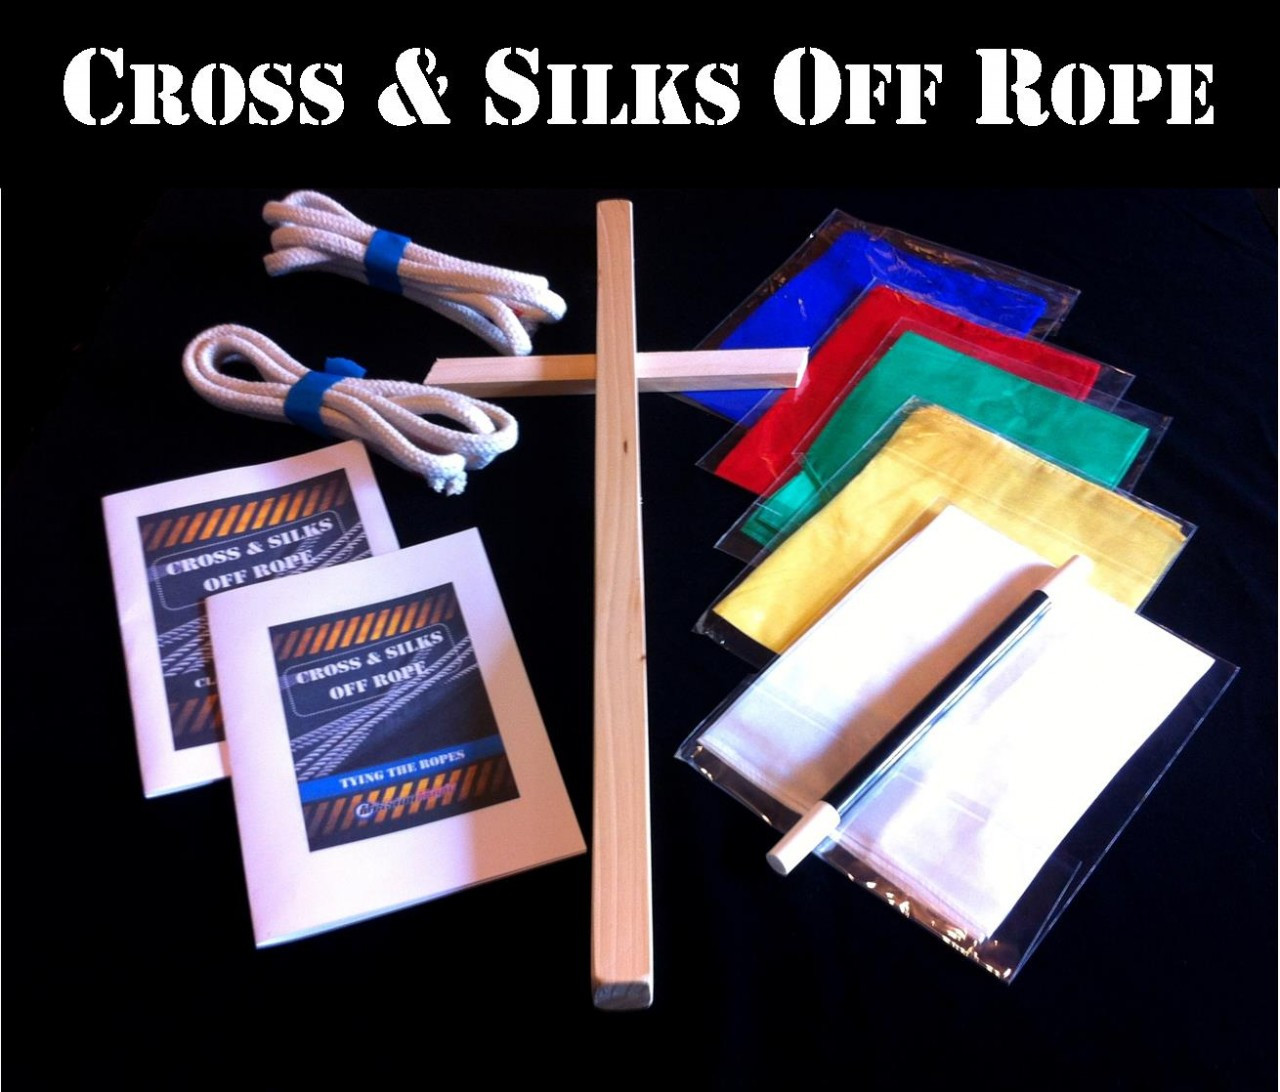 Best Seller - Cross & Silk off Rope - THE most powerful illustration of the Gospel.